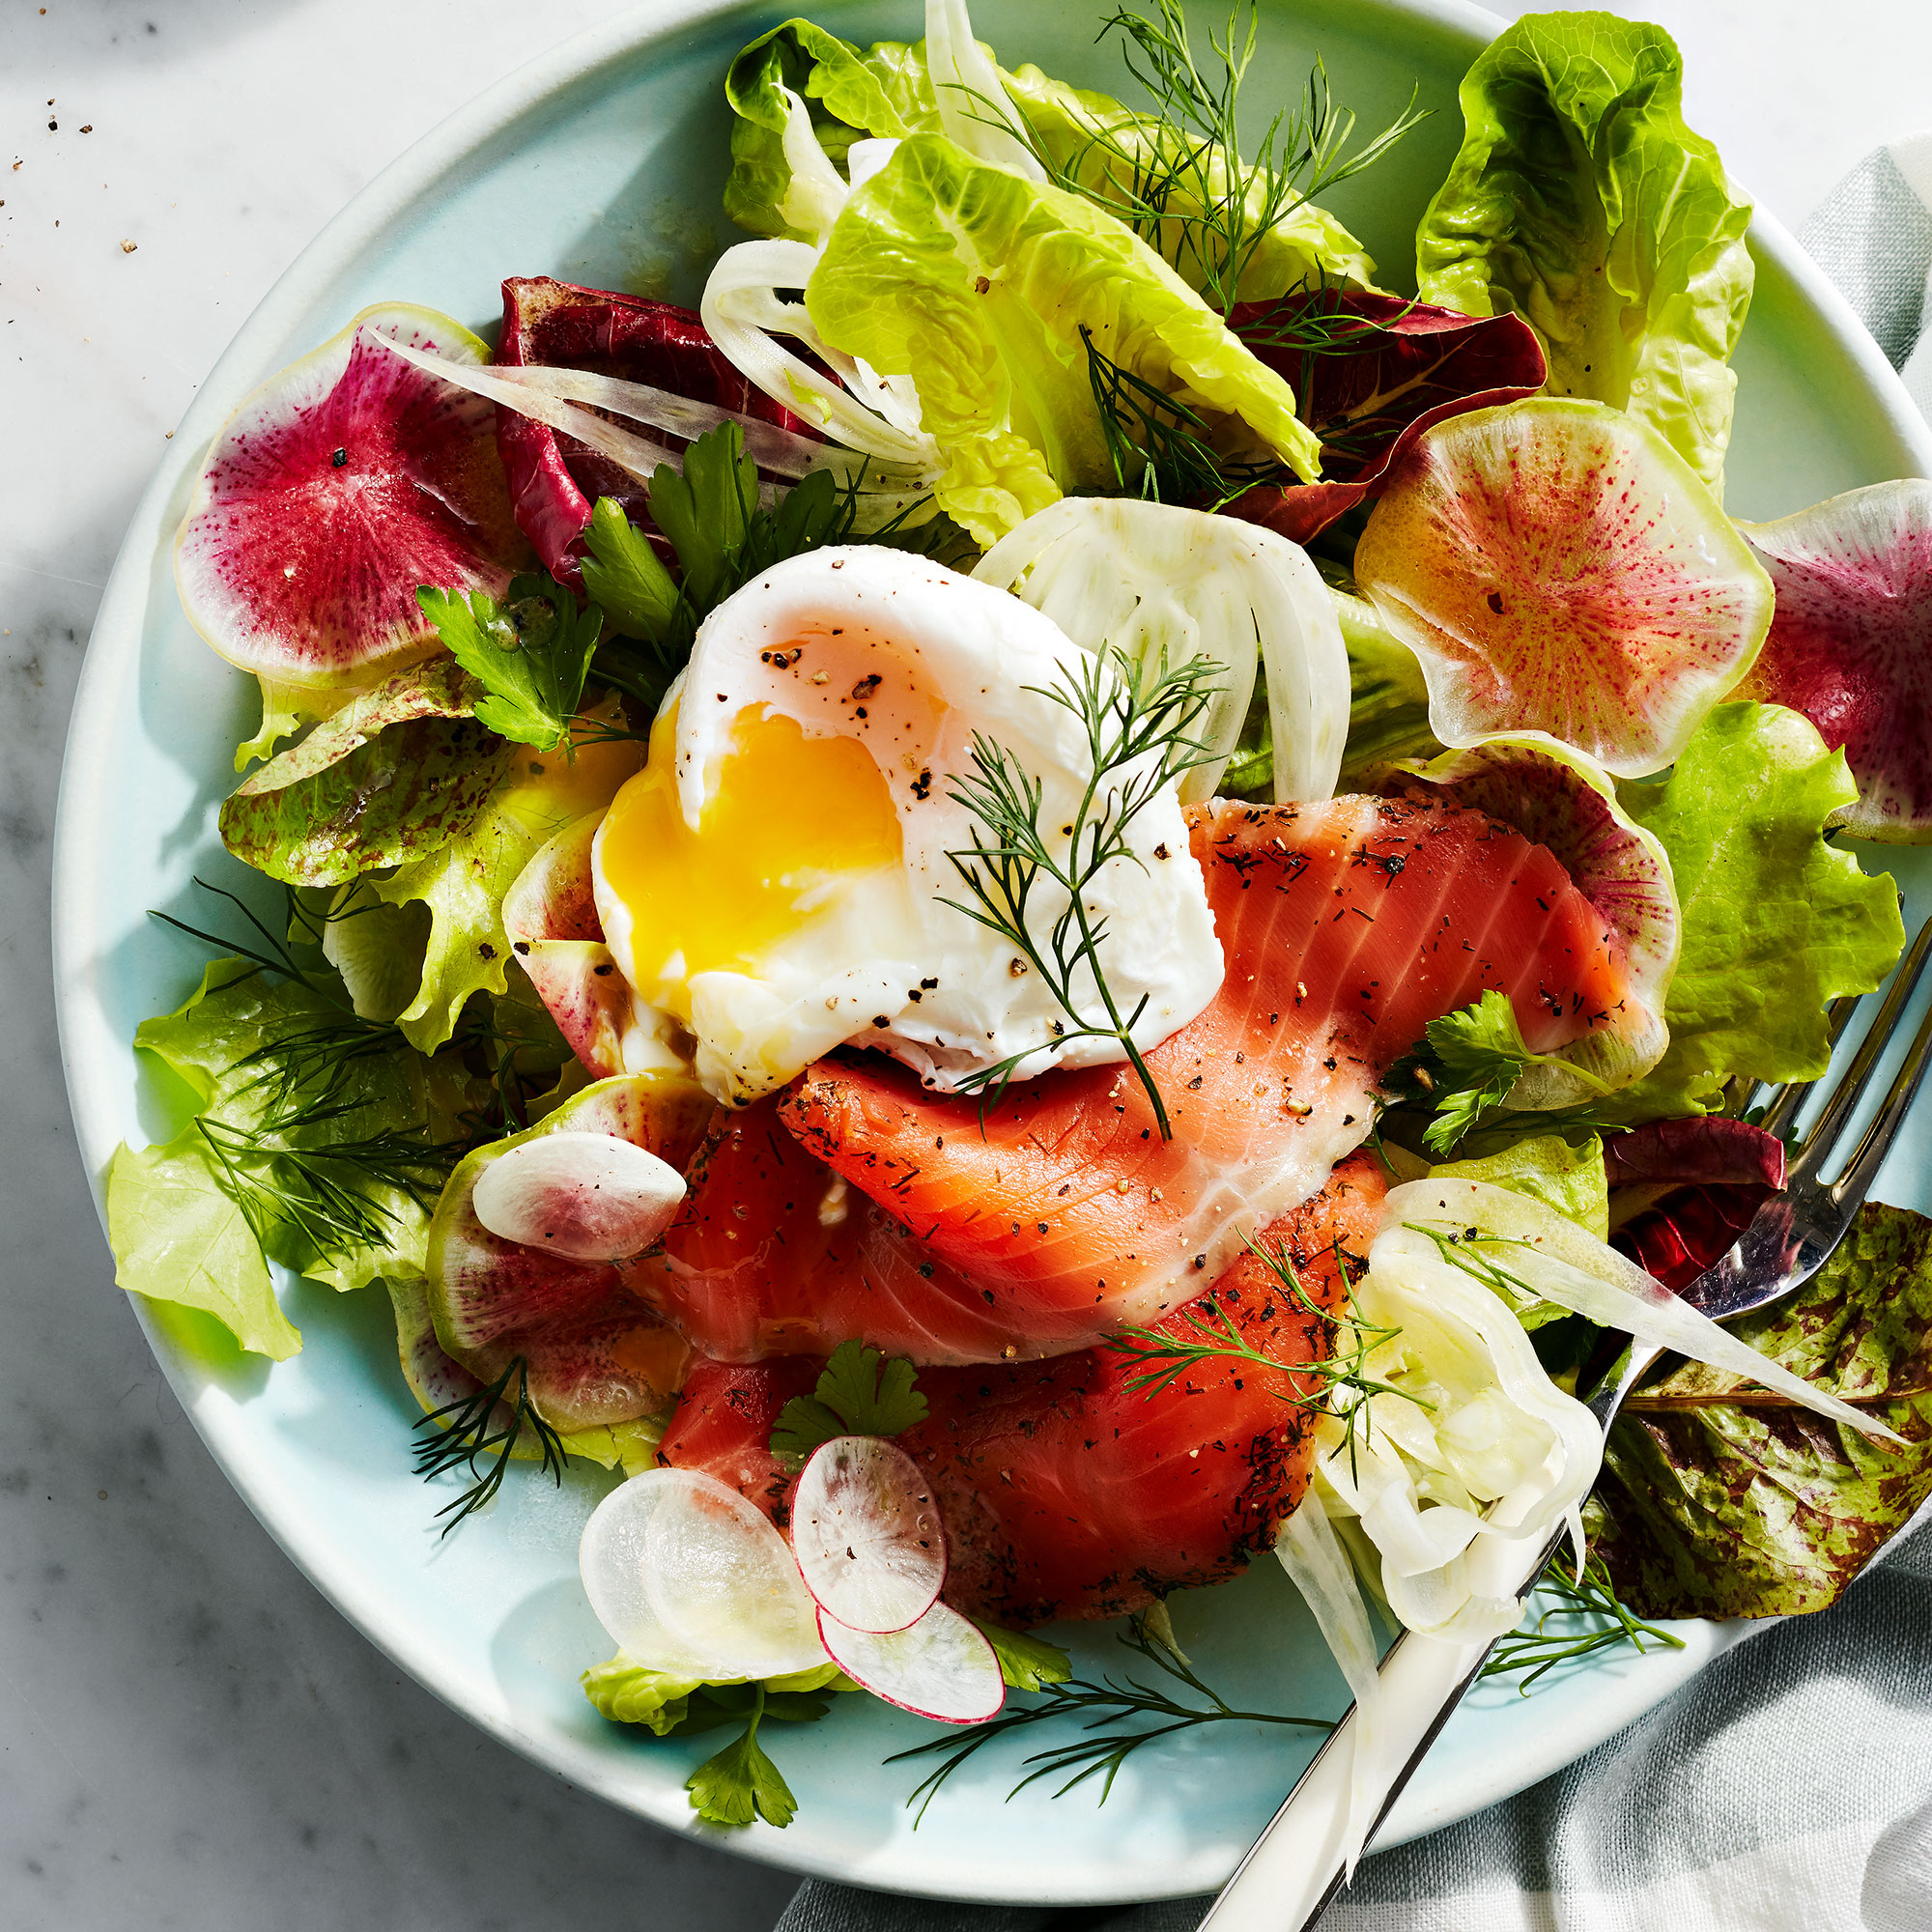 Breakfast Salad with Smoked Salmon & Poached Eggs